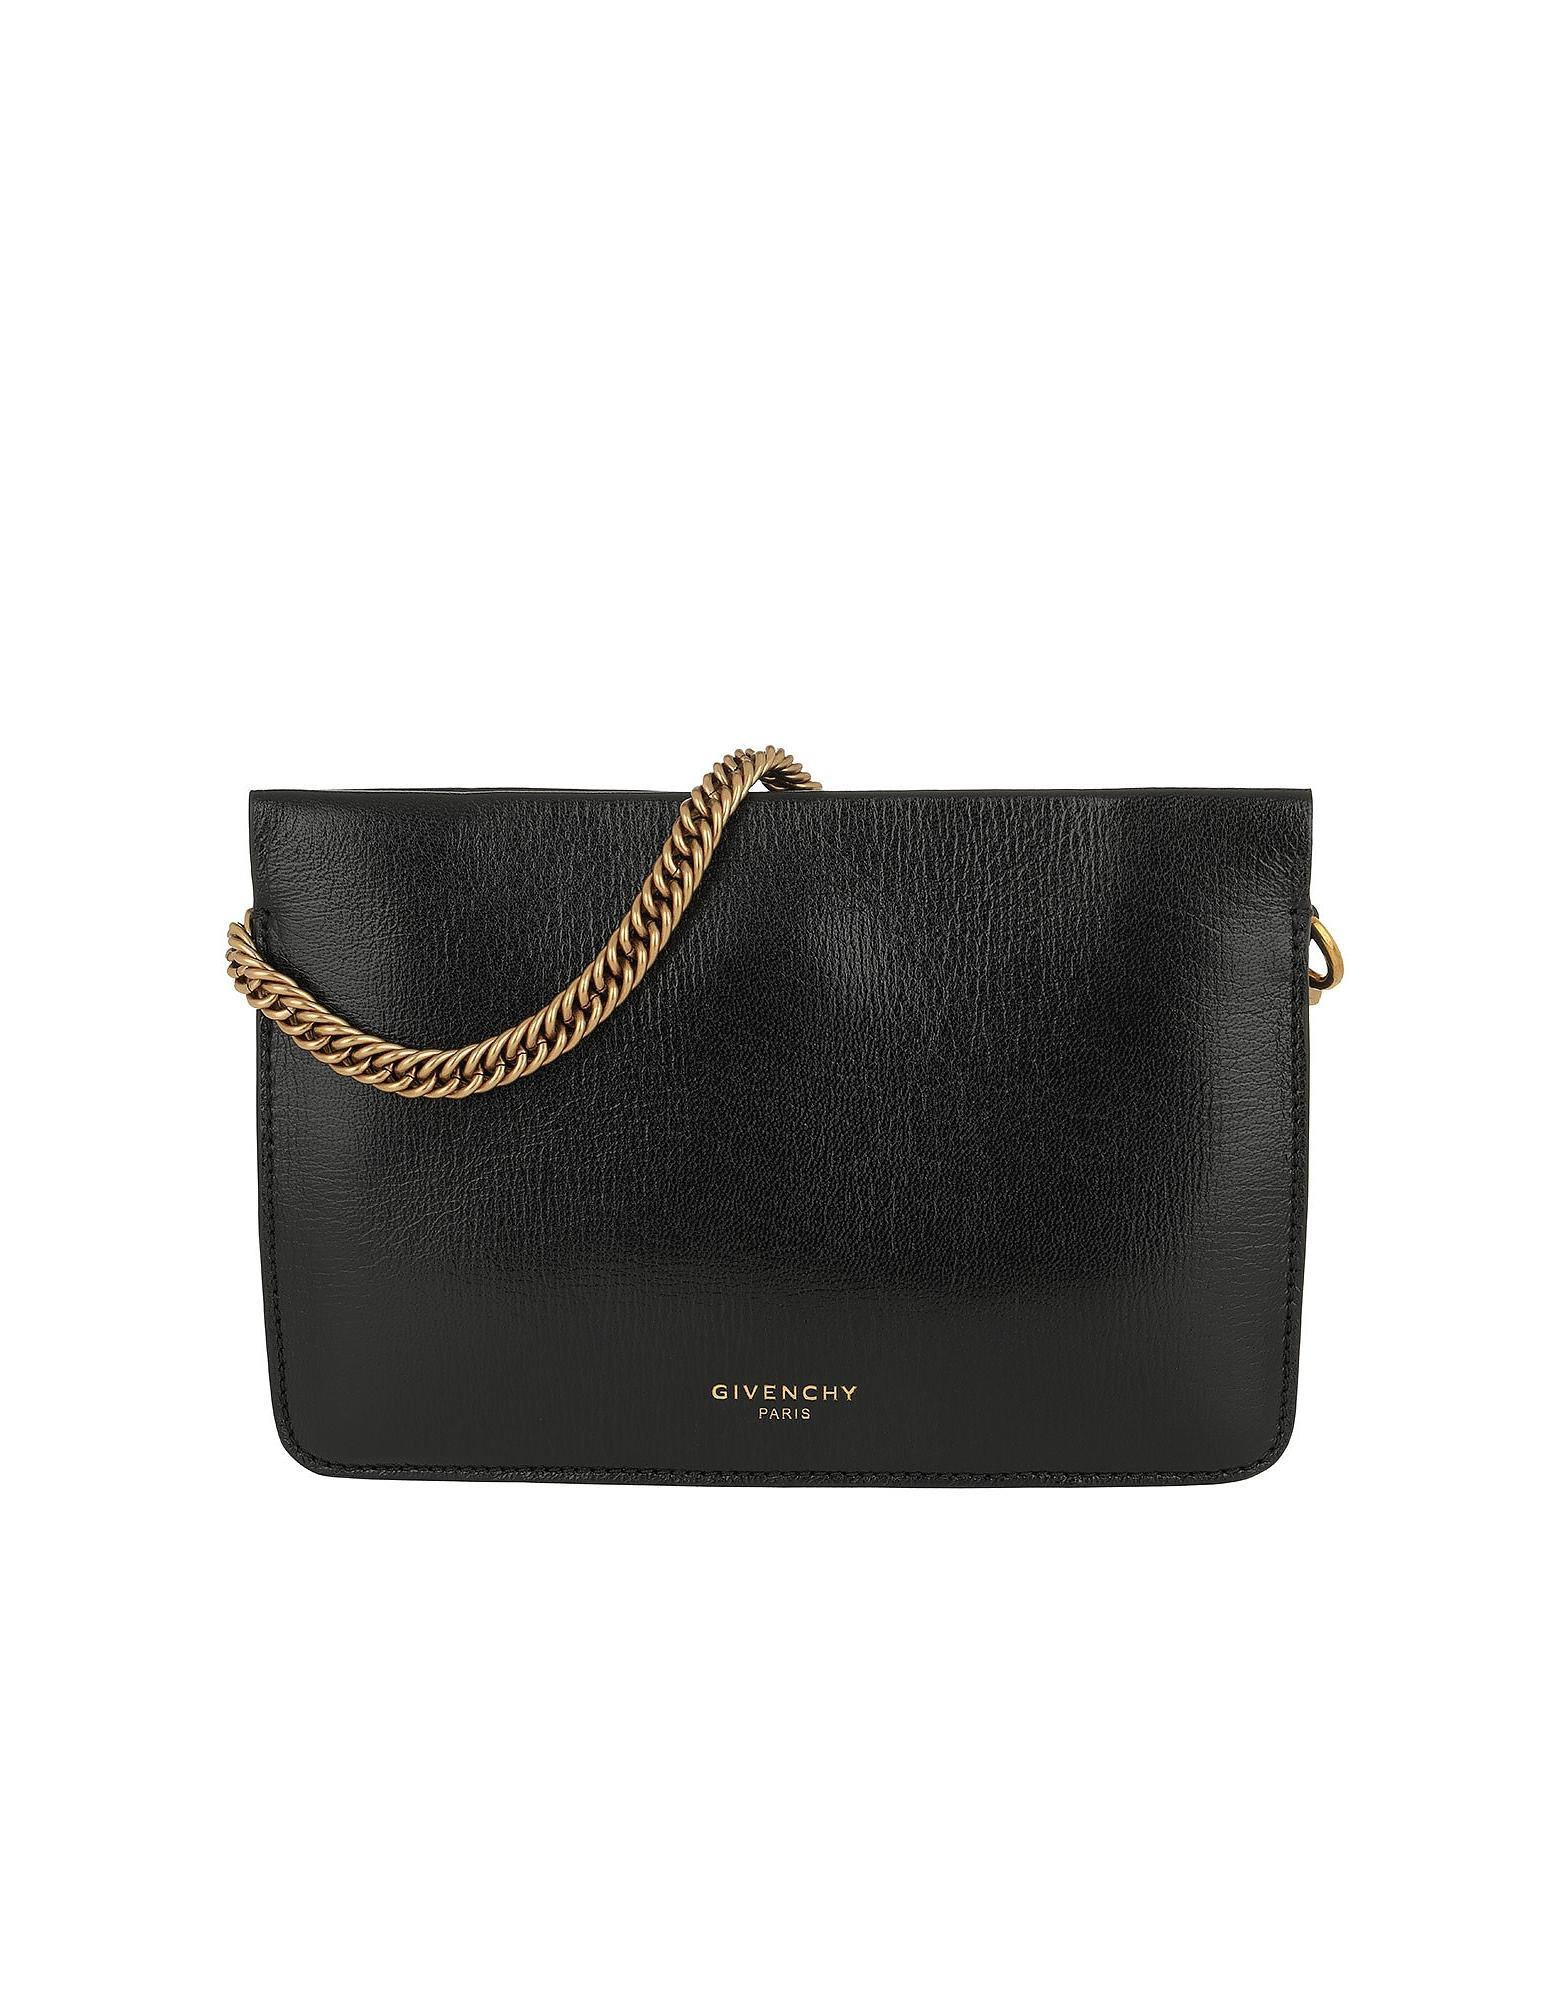 Lyst - Givenchy Cross3 Bag Grained Leather Suede Black in Black 9c237eb8b713a